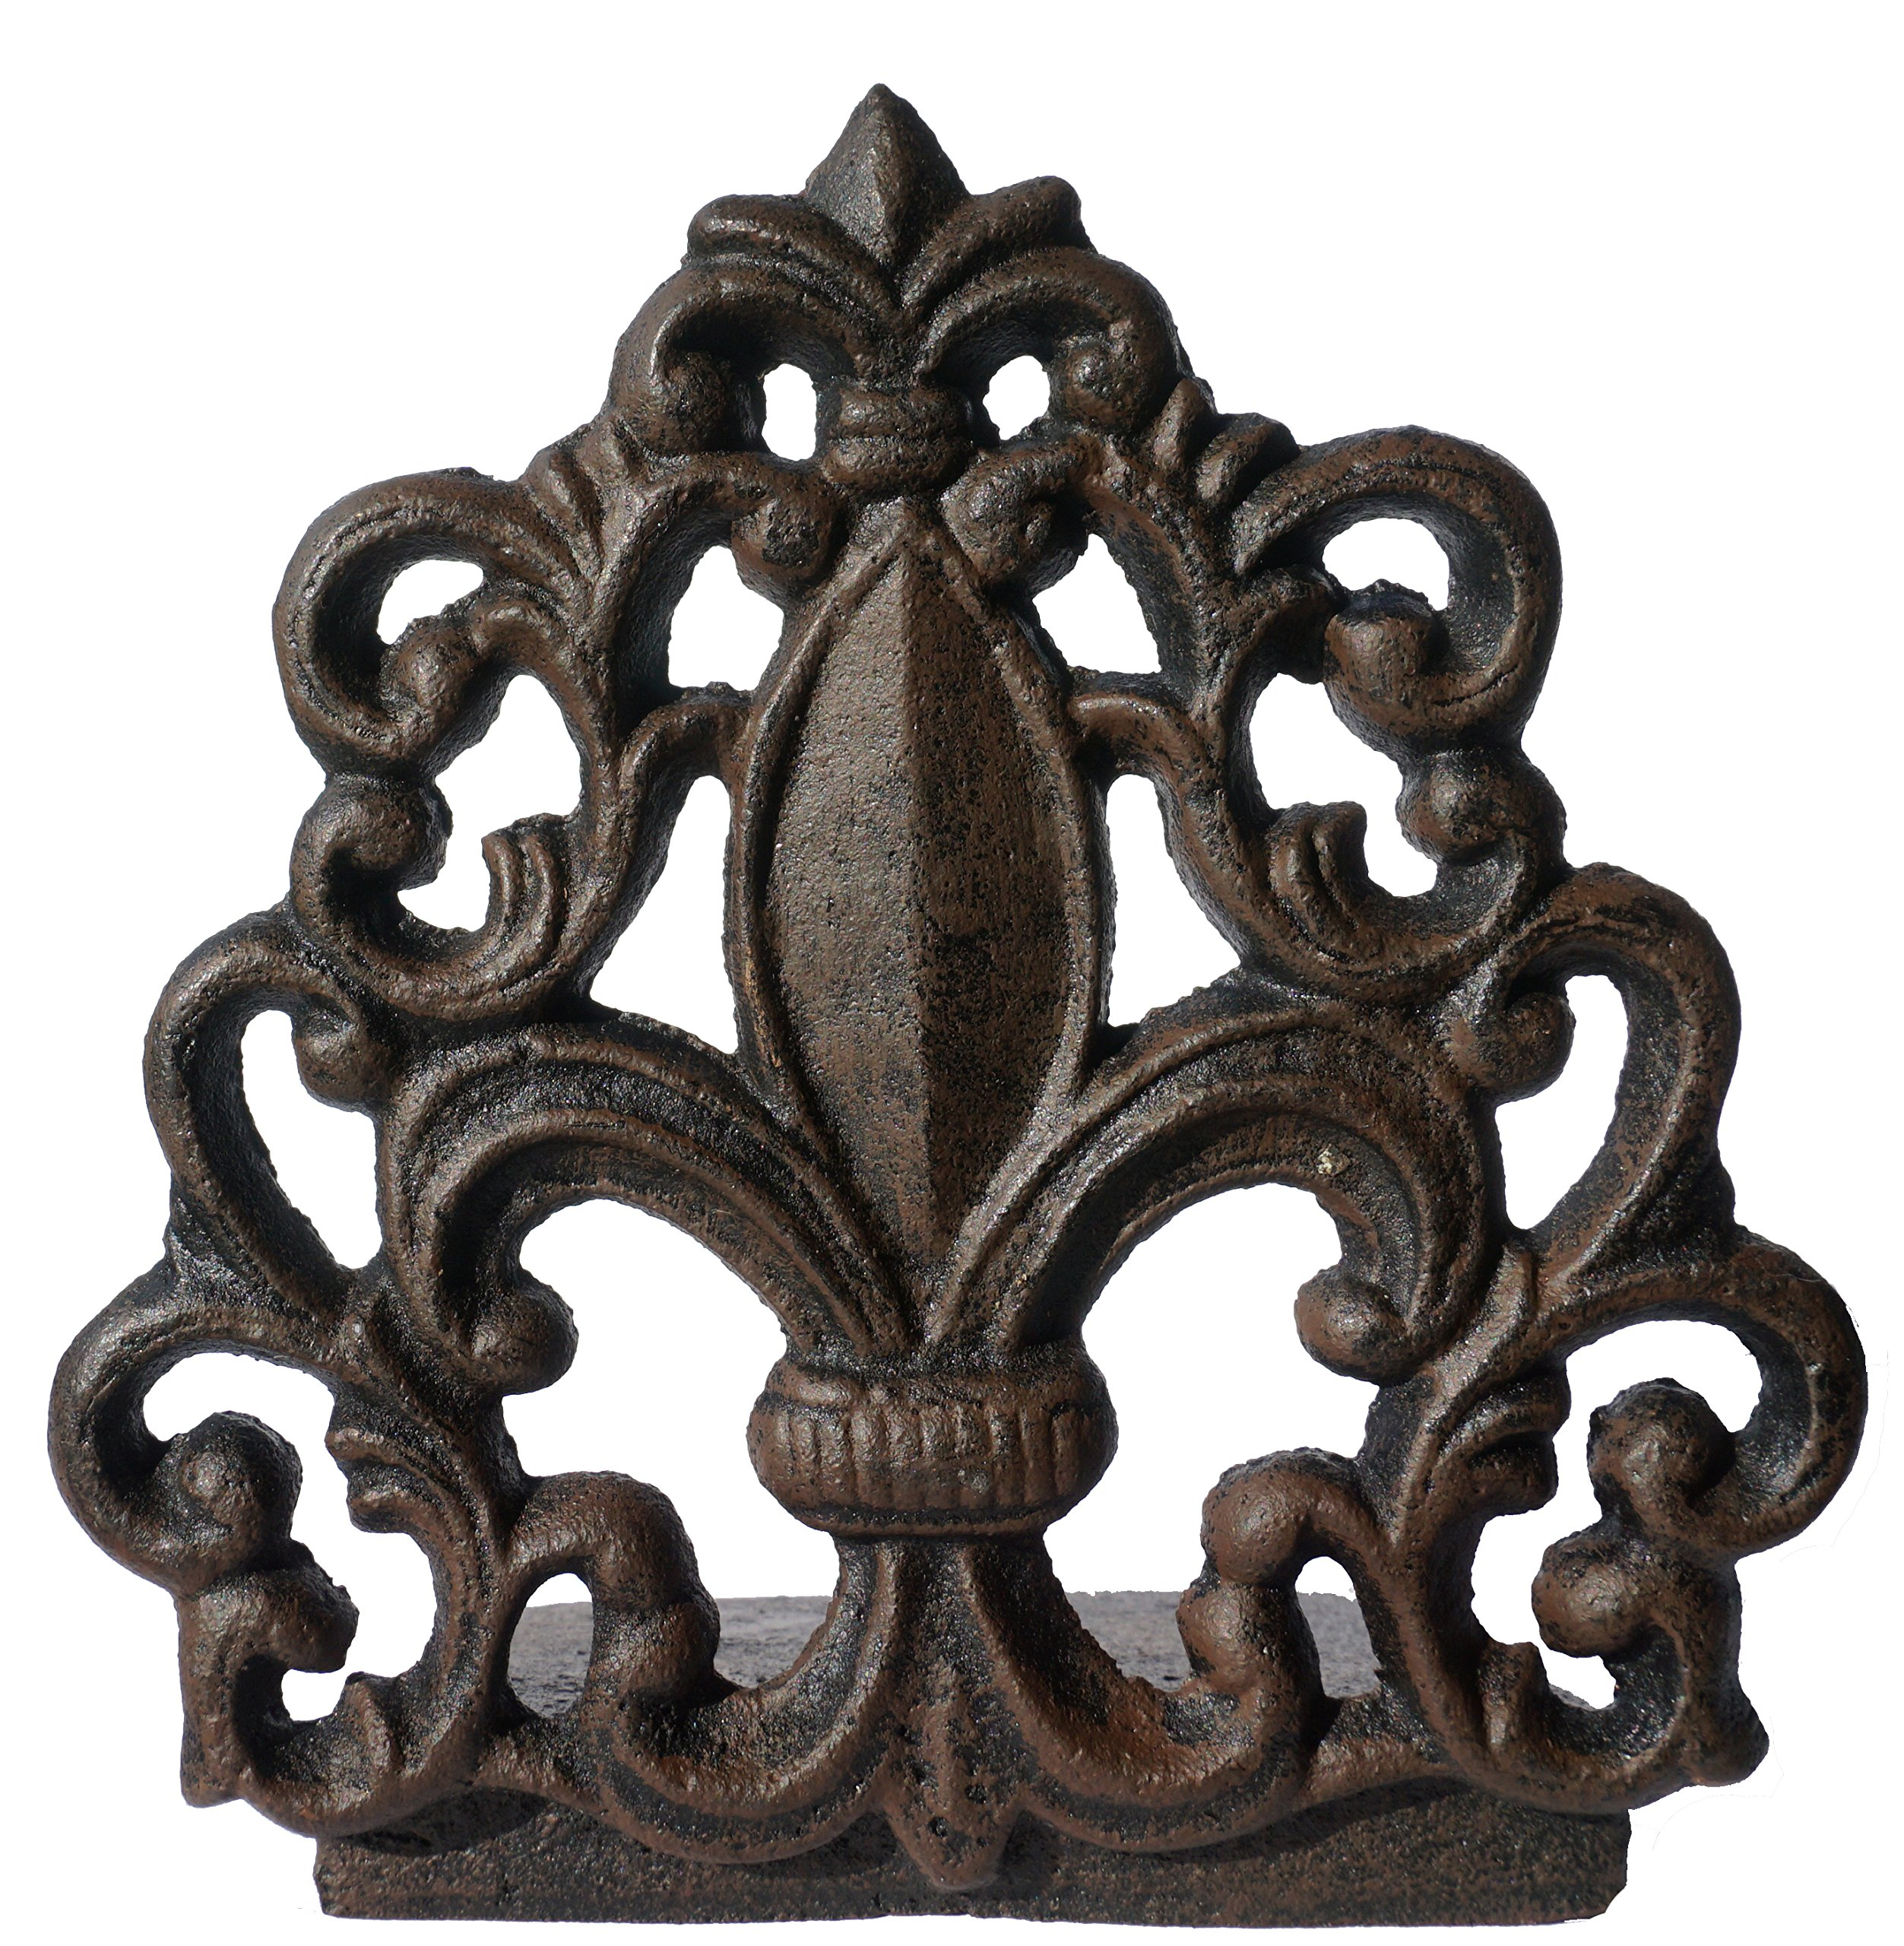 LuLu Decor, Cast Iron Fleur De Lis Door Stop, Door Stopper in Antique Black Finish, Beautiful and Useful Product, Simply Insert Flat Base Underneath Your Door Space, Works Great (LB15BK3) by LuLu